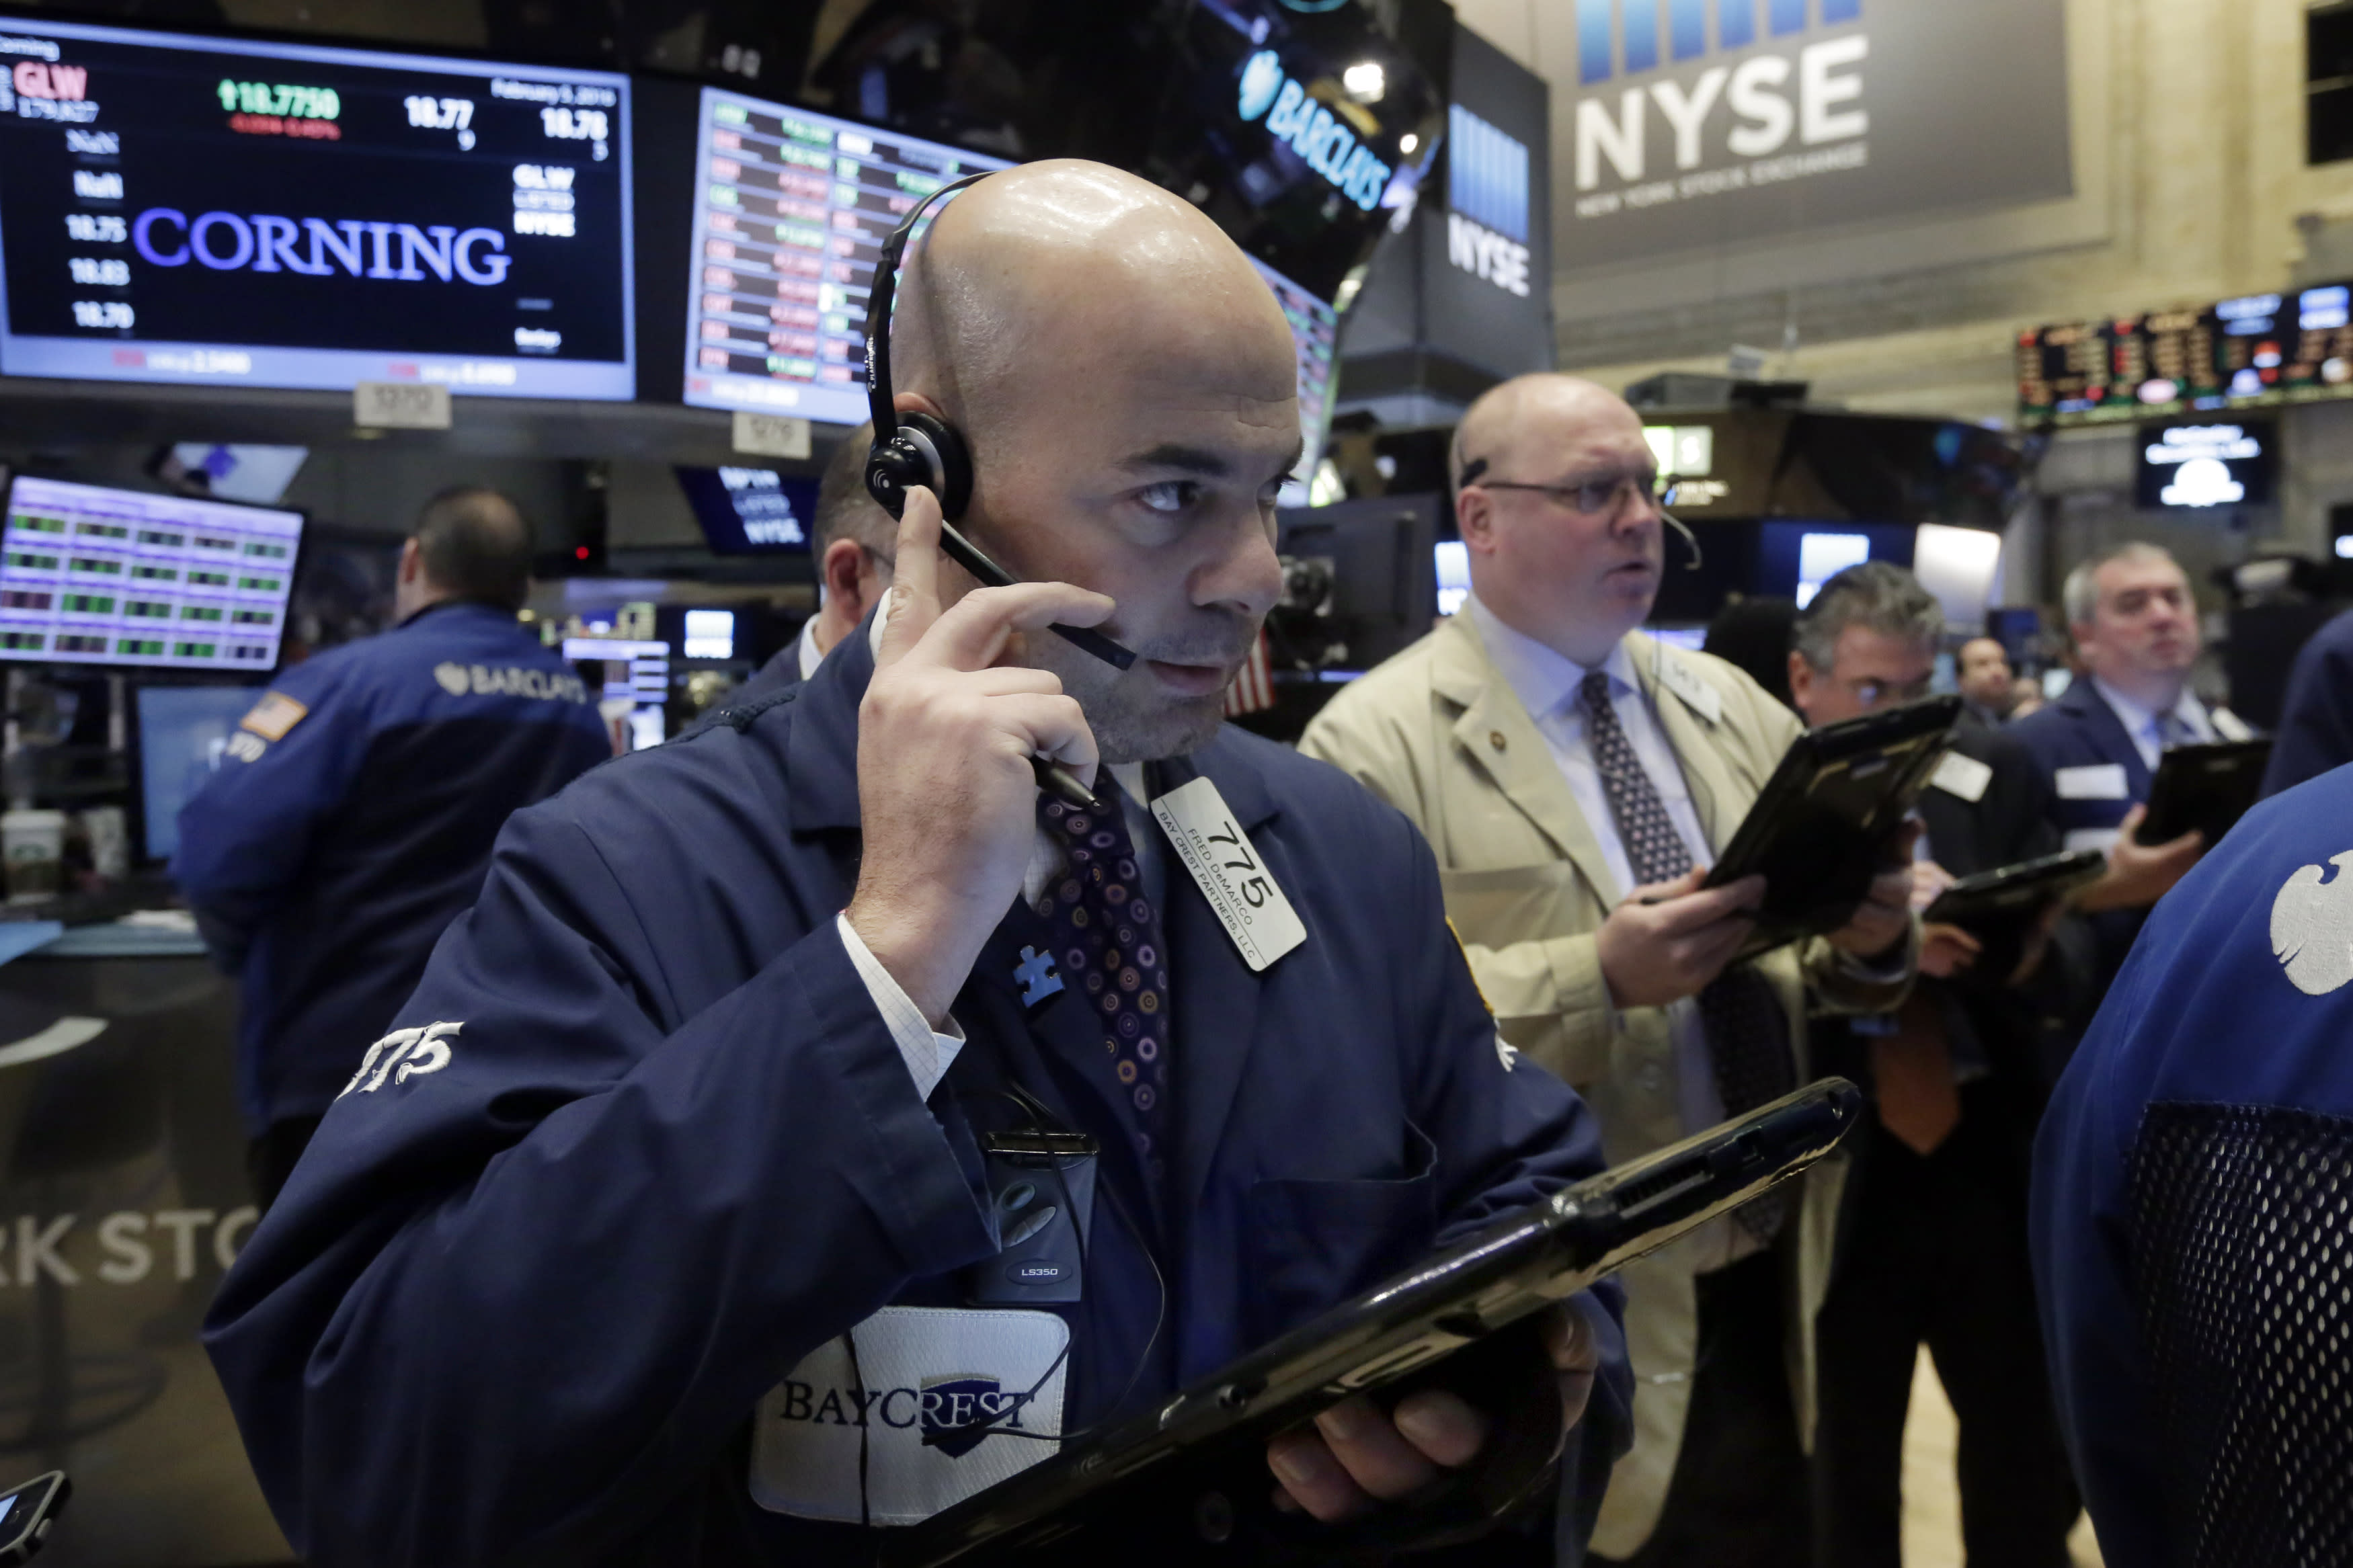 Market flops as jobs data stokes rate fears; Clinton's Wall Street problem